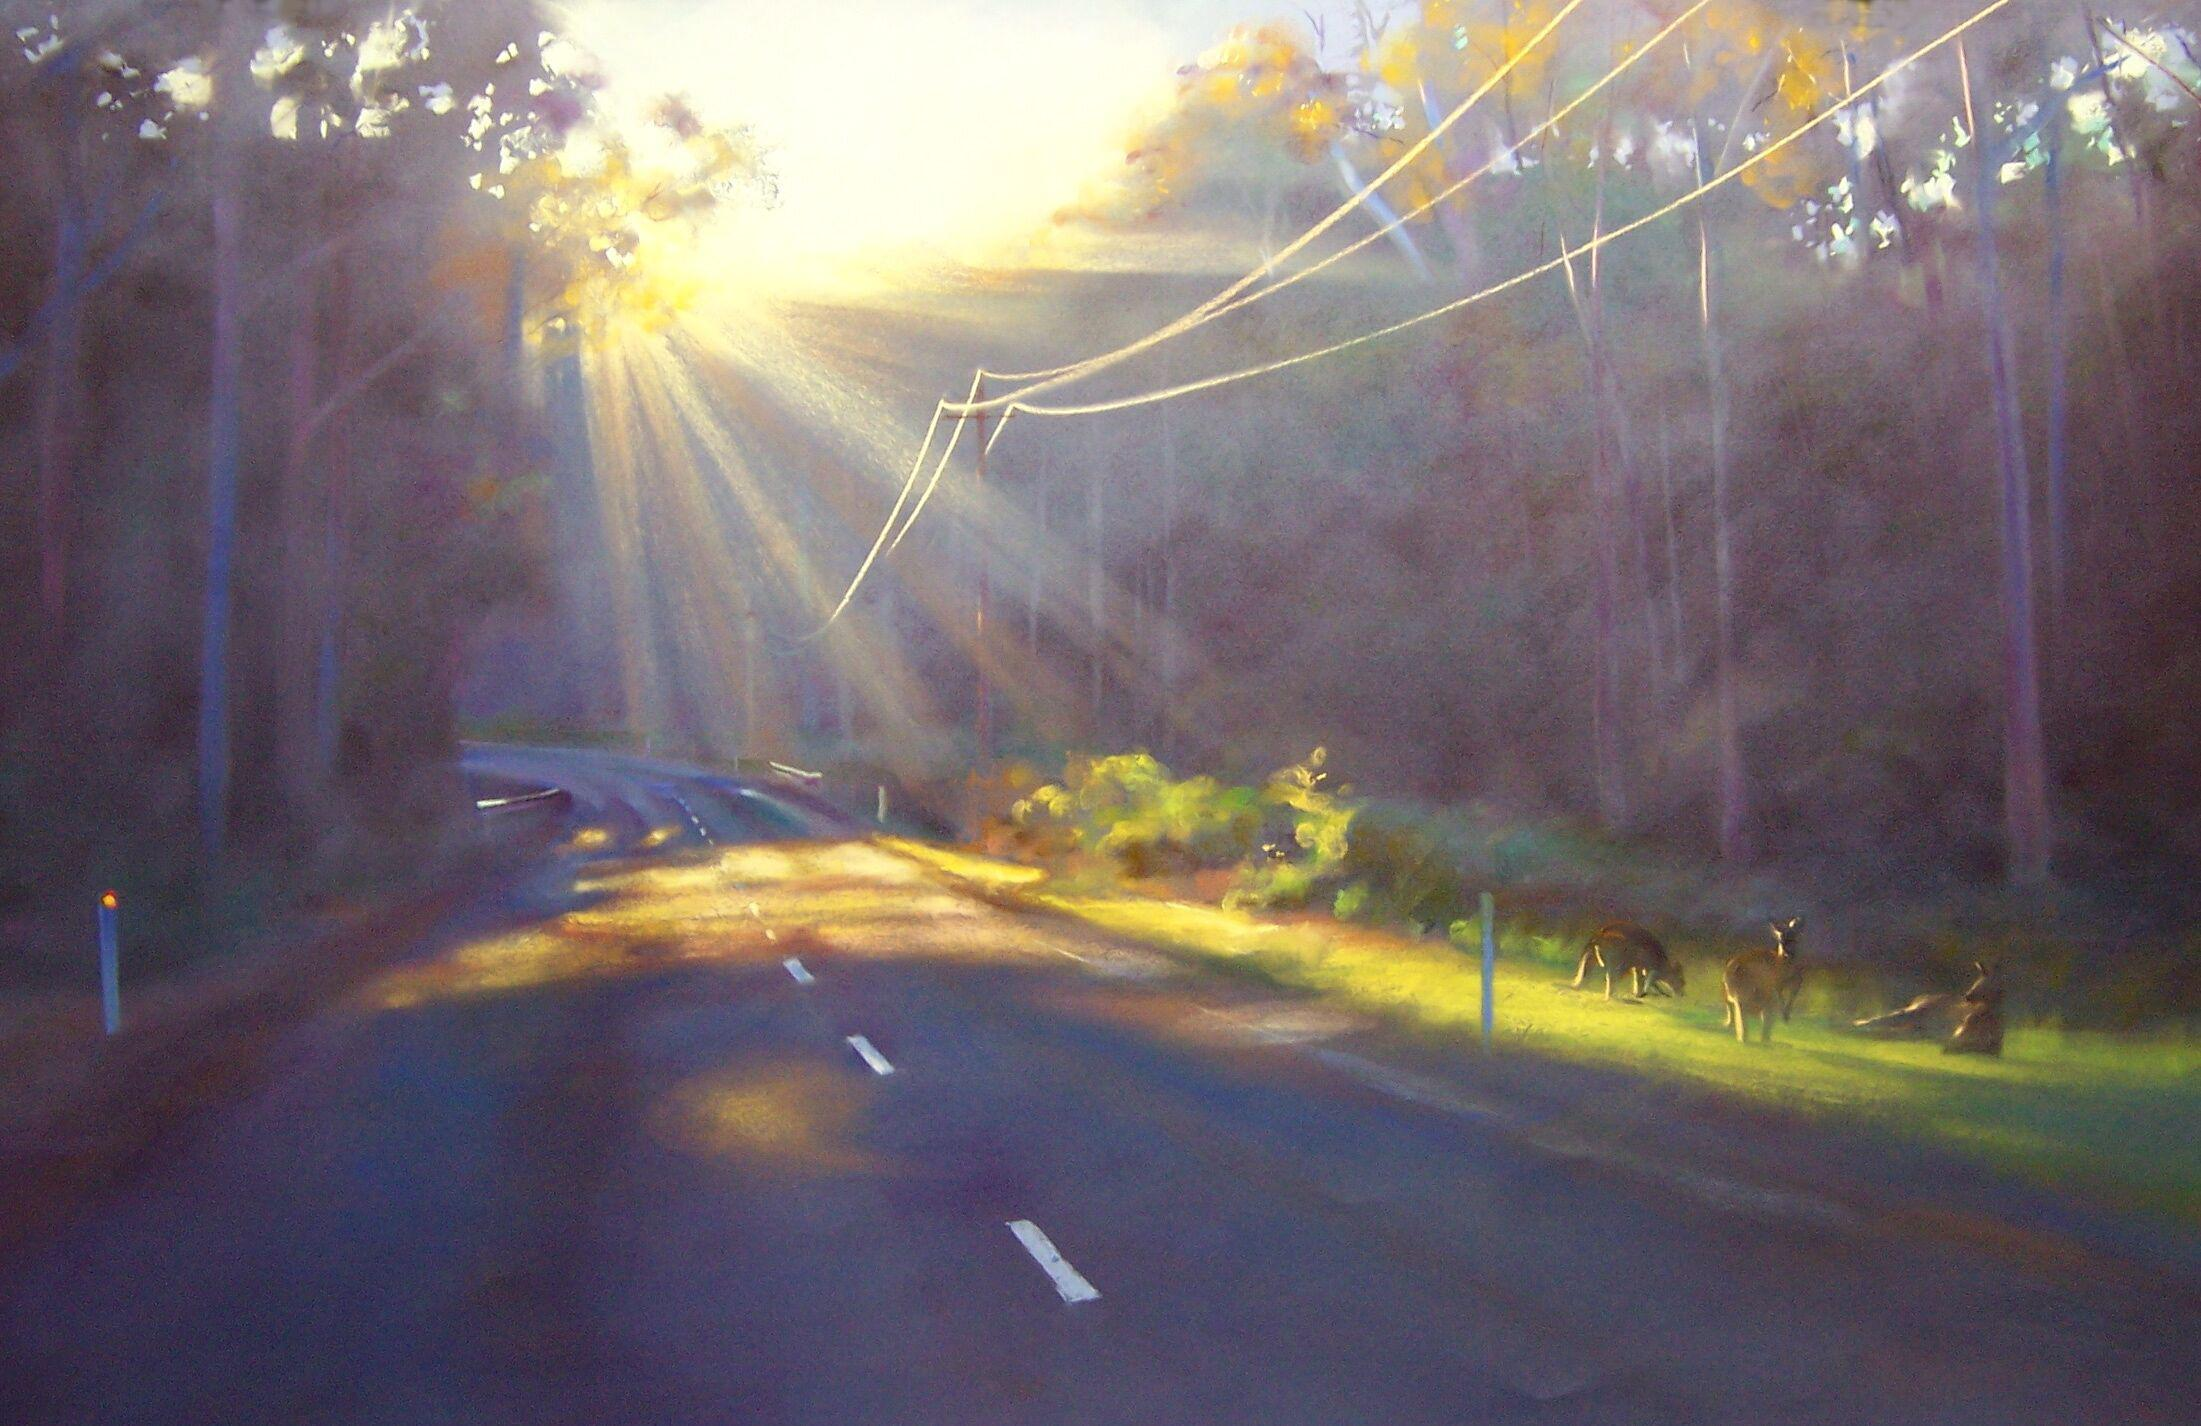 GracePaleg painting The Road to Durras